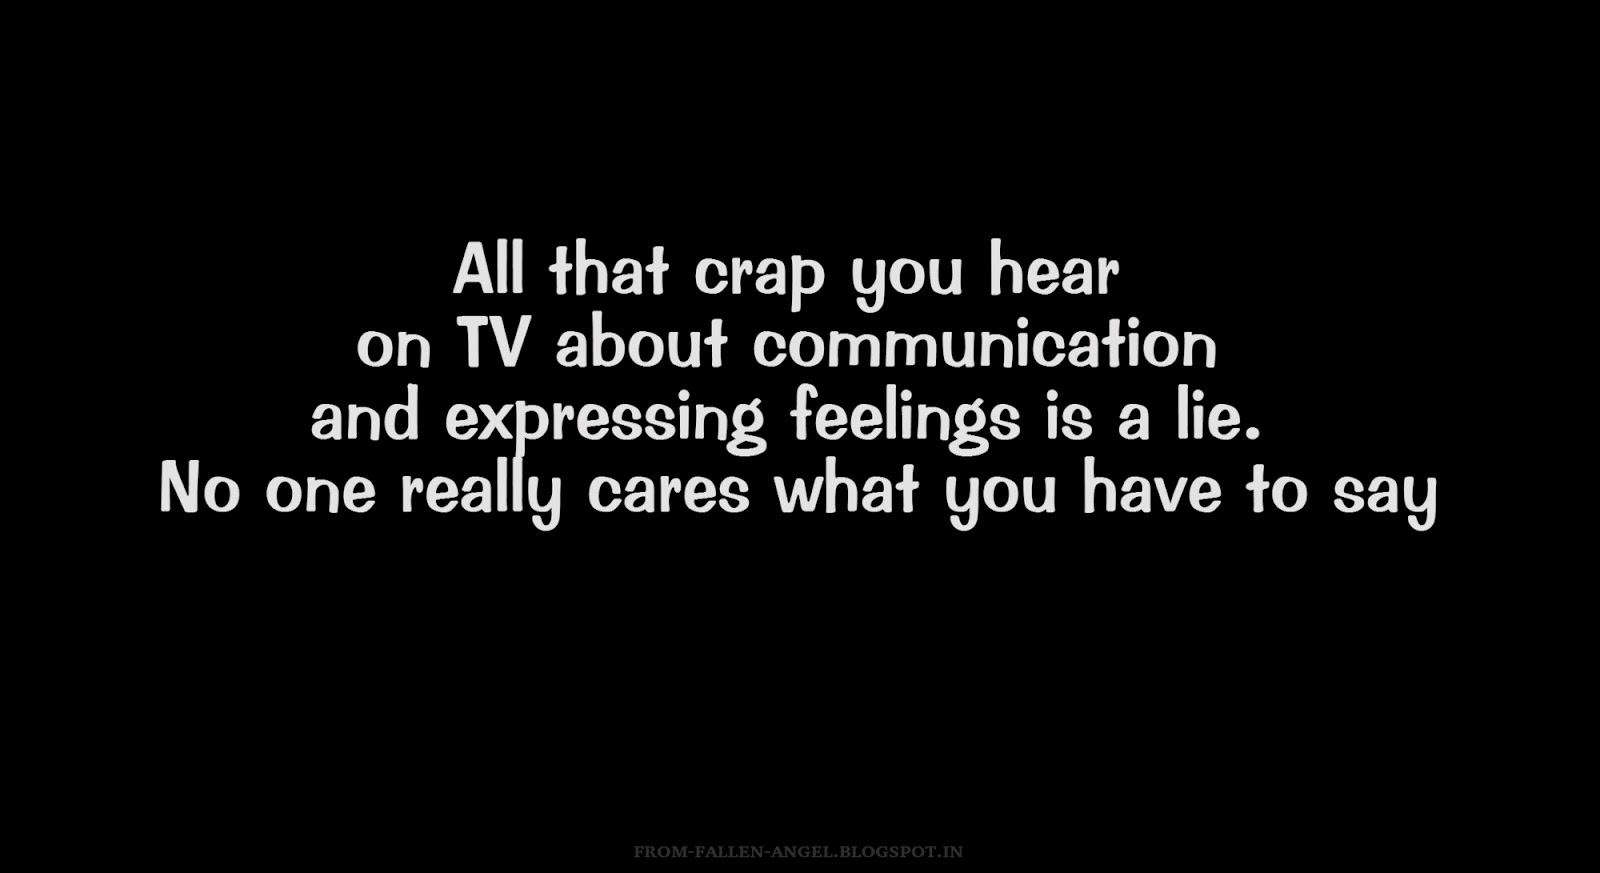 All that crap you hear on TV about communication and expressing feelings is a lie. No one really cares what you have to say